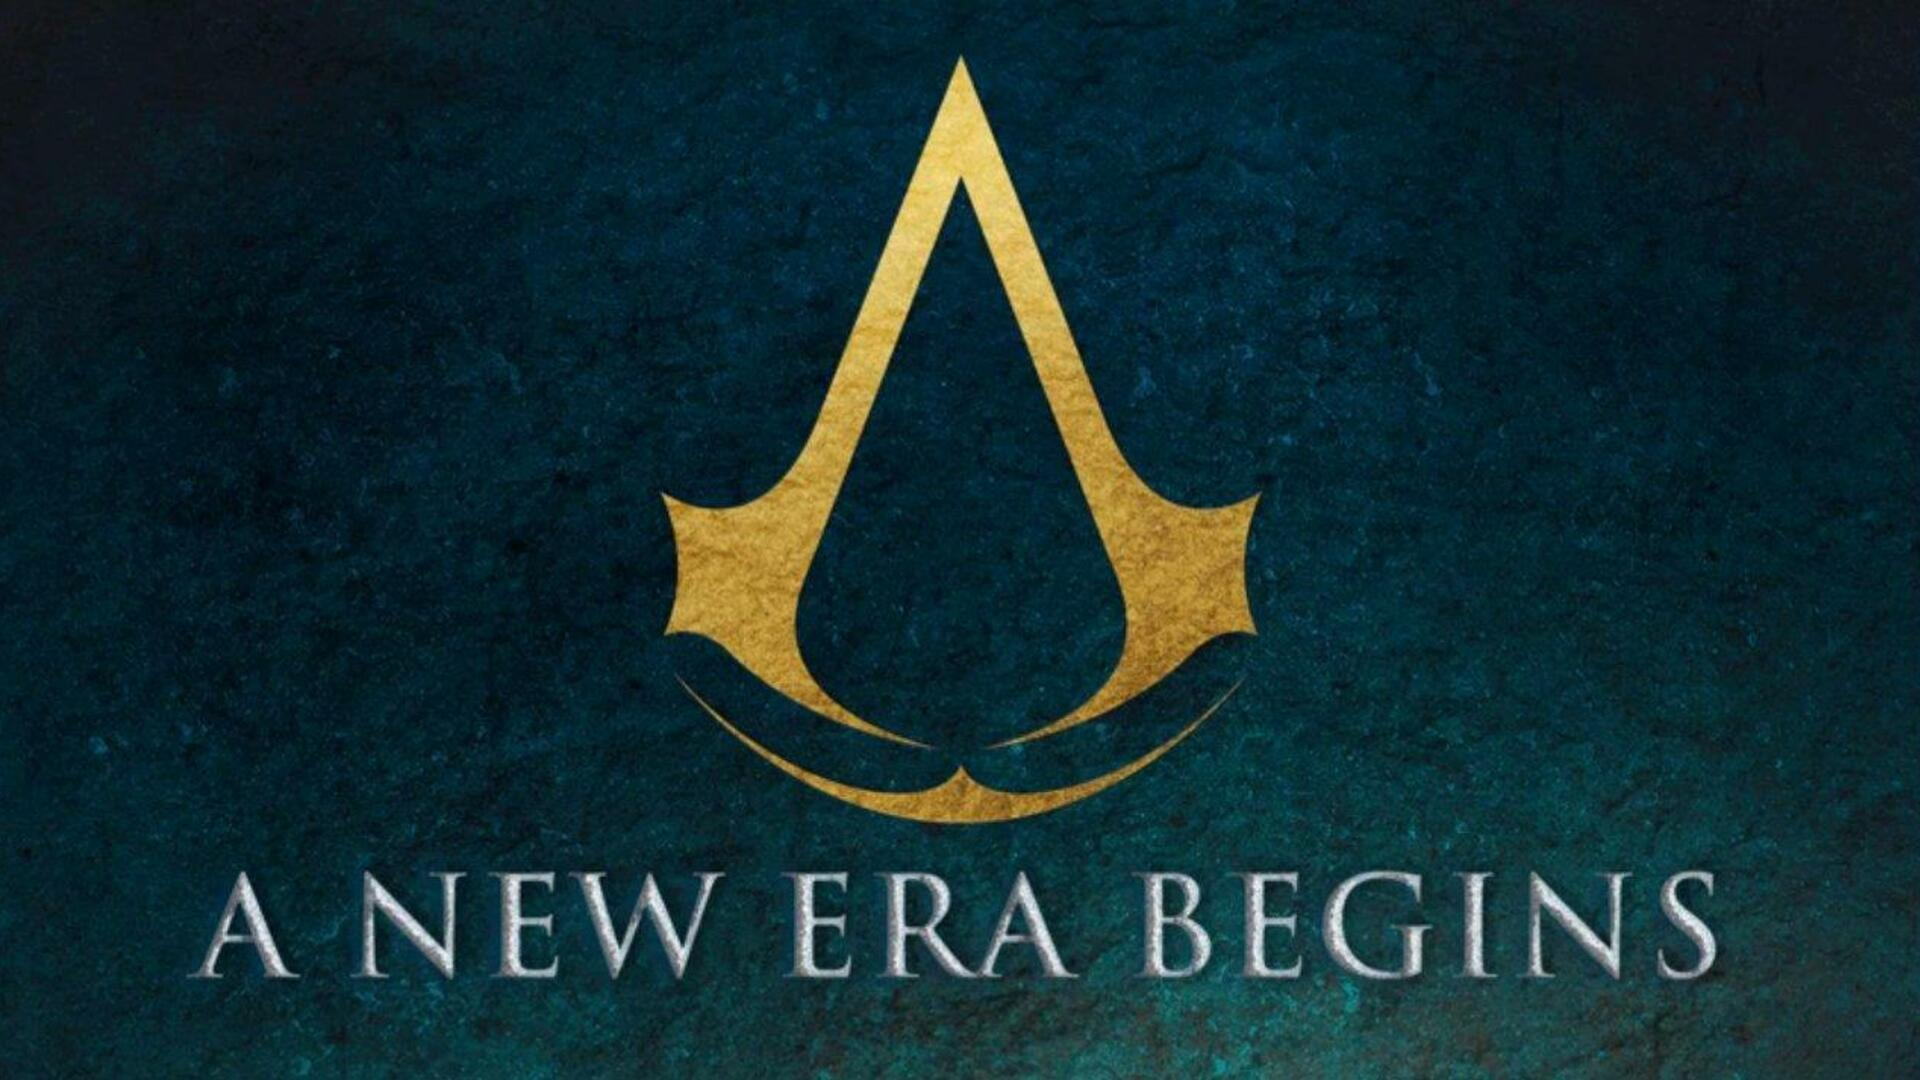 Assassin's Creed Origins Release Date, Previews, Xbox One X Gameplay, Gold Edition Pre-Order, Protagonist, Ancient Egypt Setting, PC System Requirements - Everything We Know